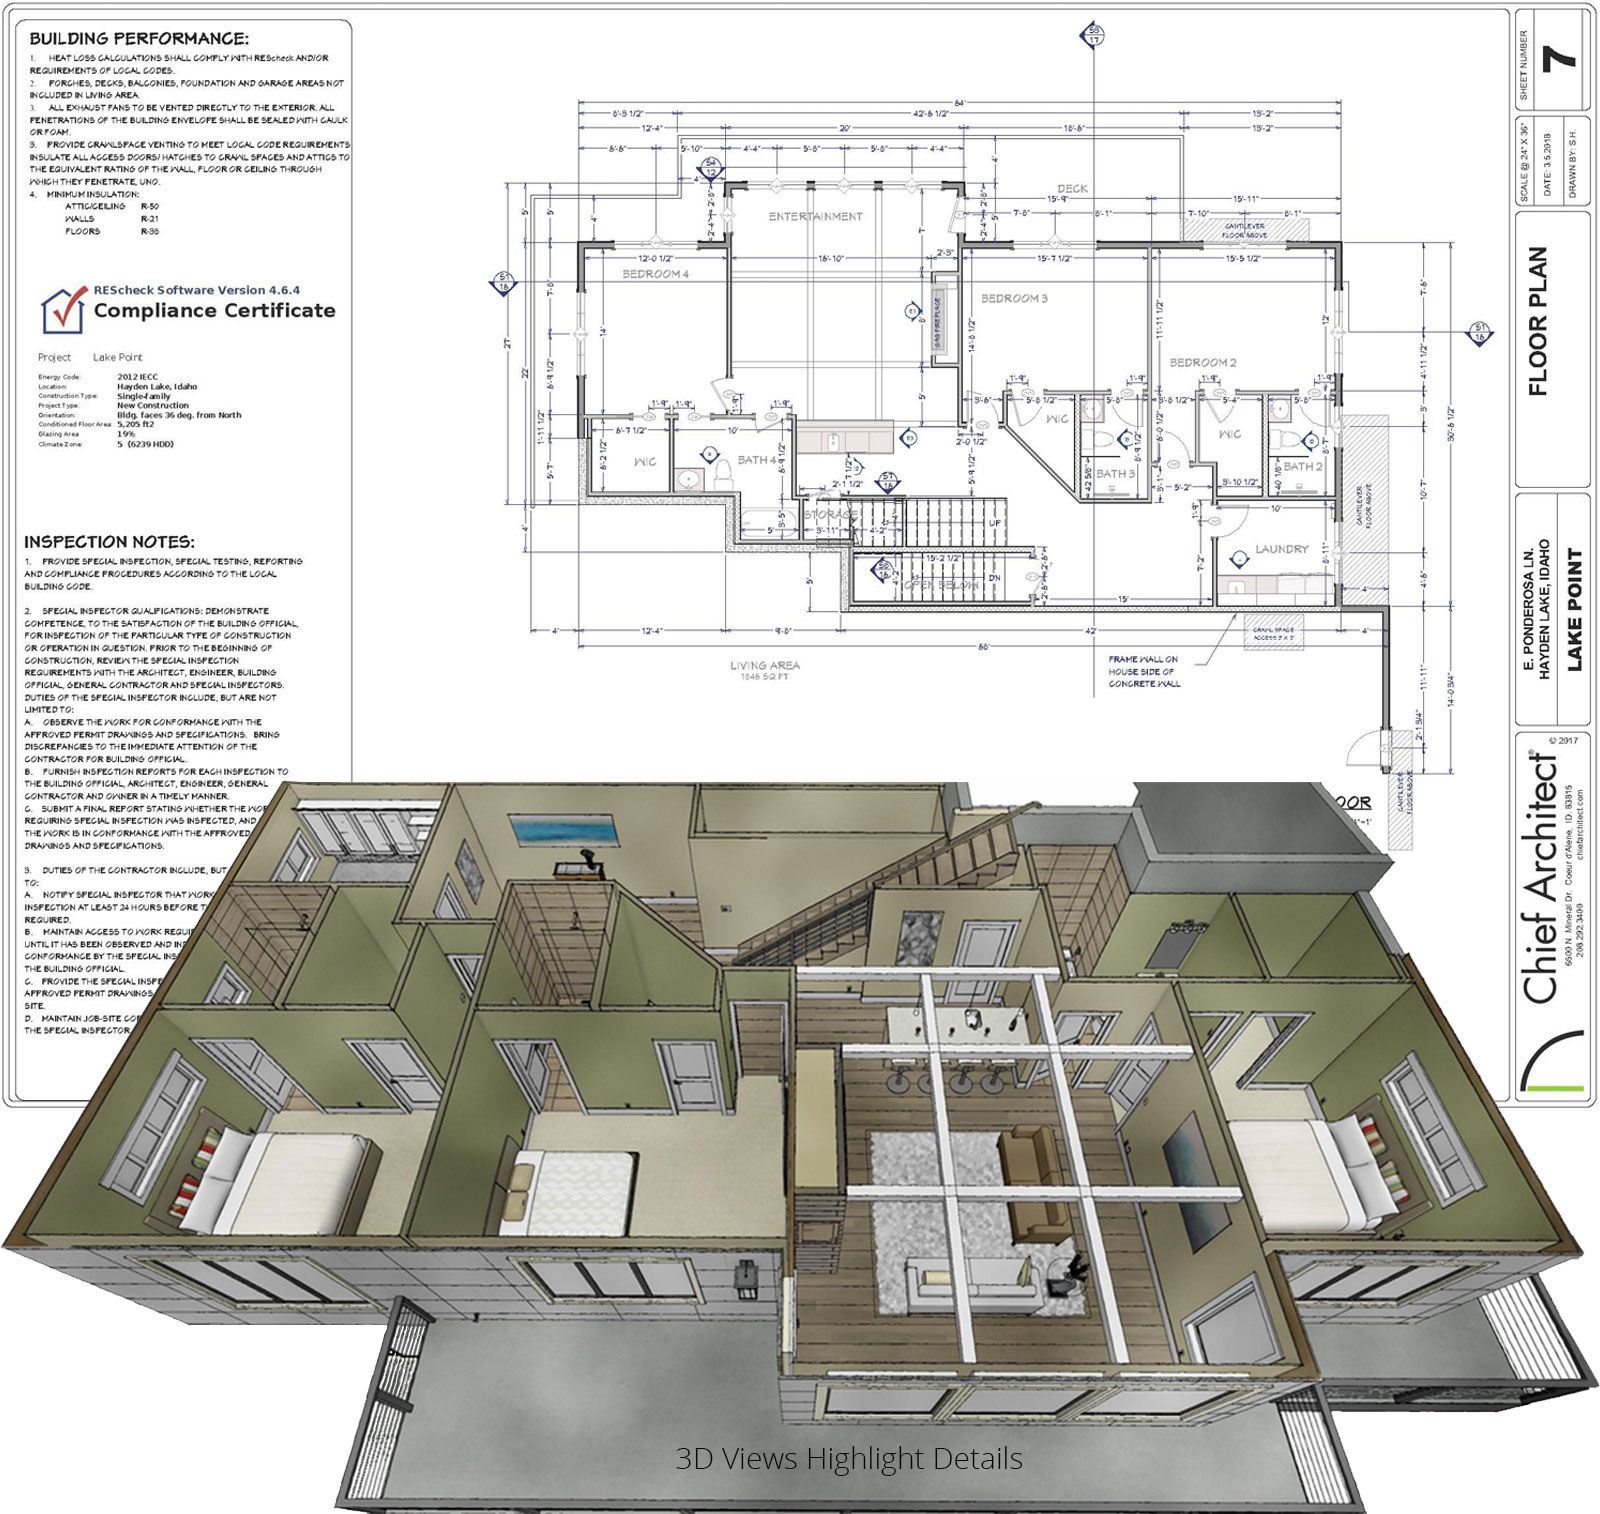 Bat Remodeling Rendering And Floorplan Details